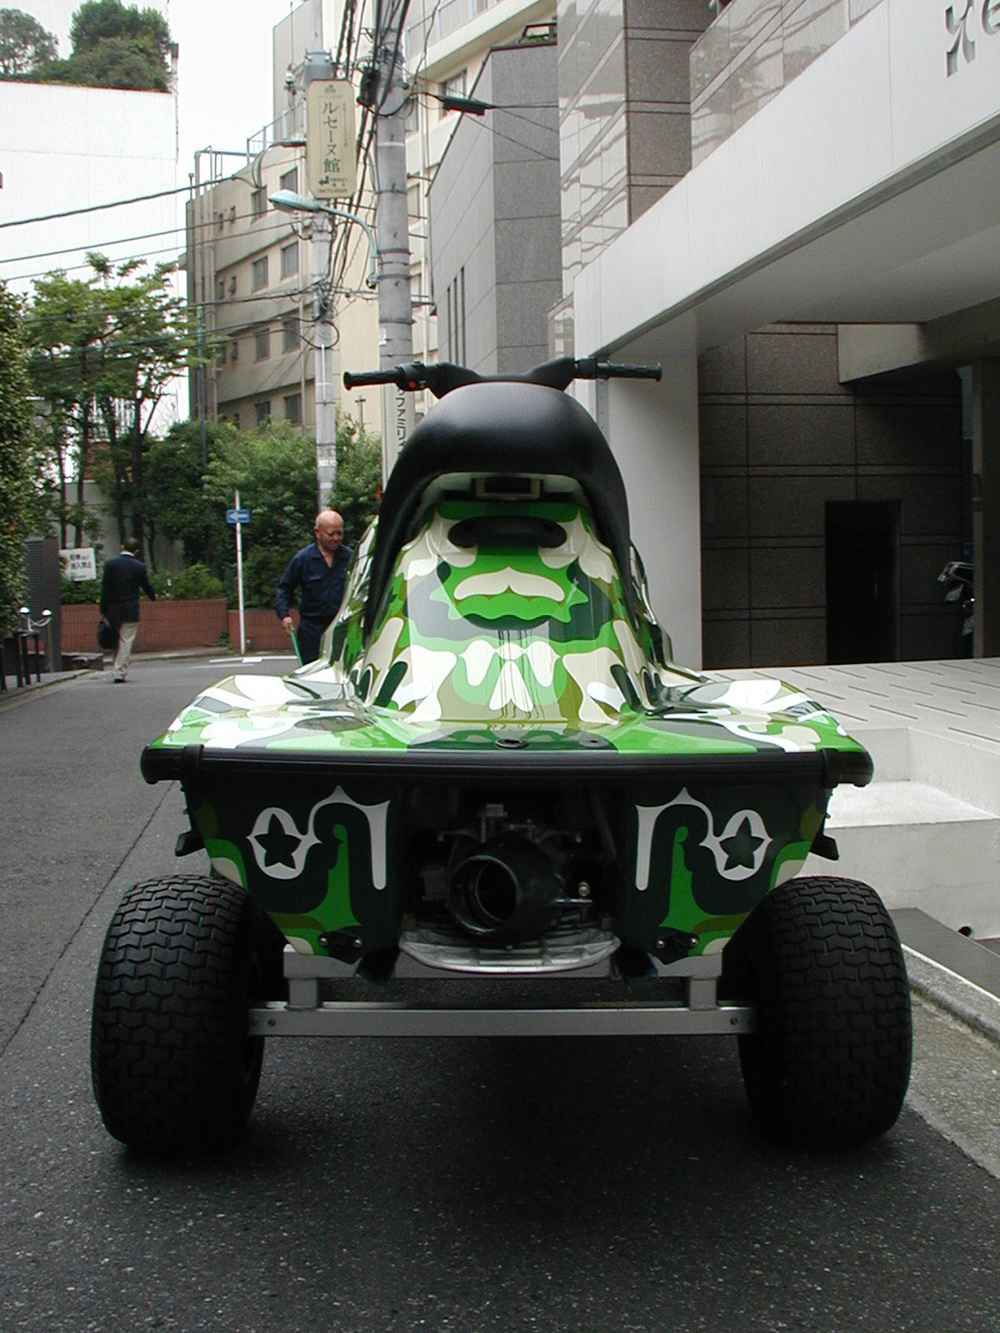 Untitled, 2003 special jetski collaboration with Yamaha dimensions vary